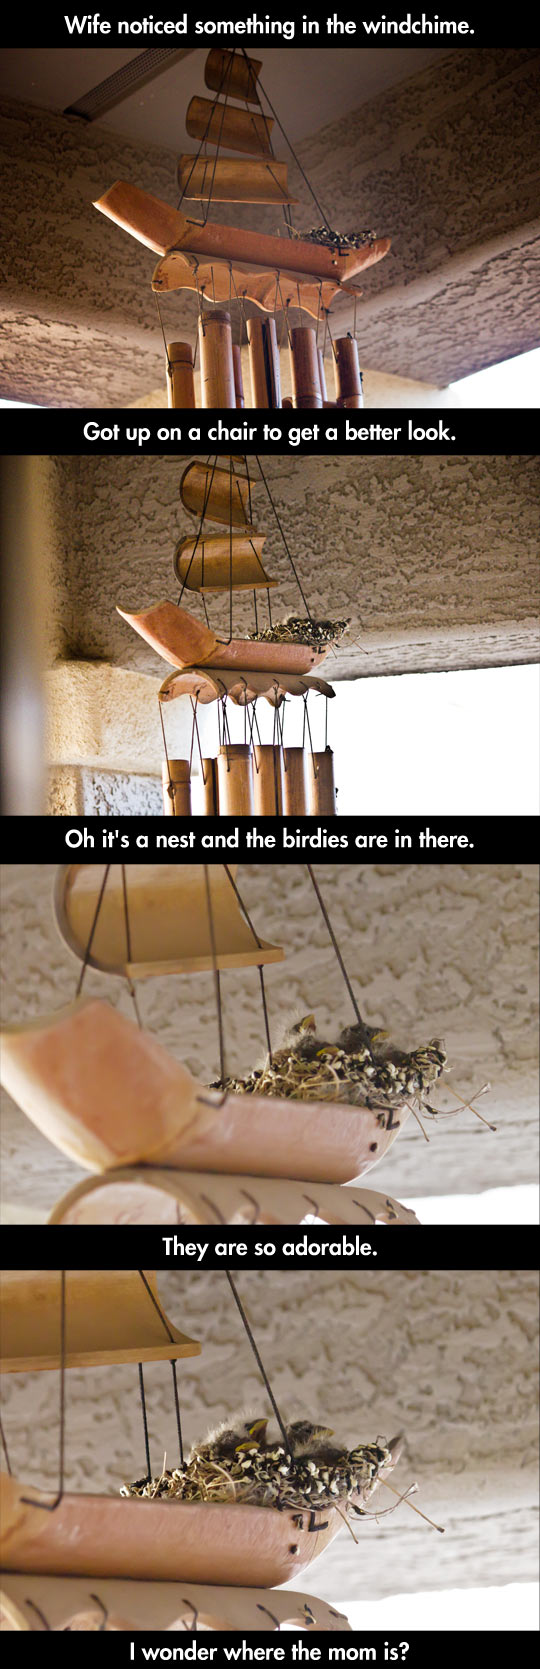 funny-wind-chime-nest-birds-home